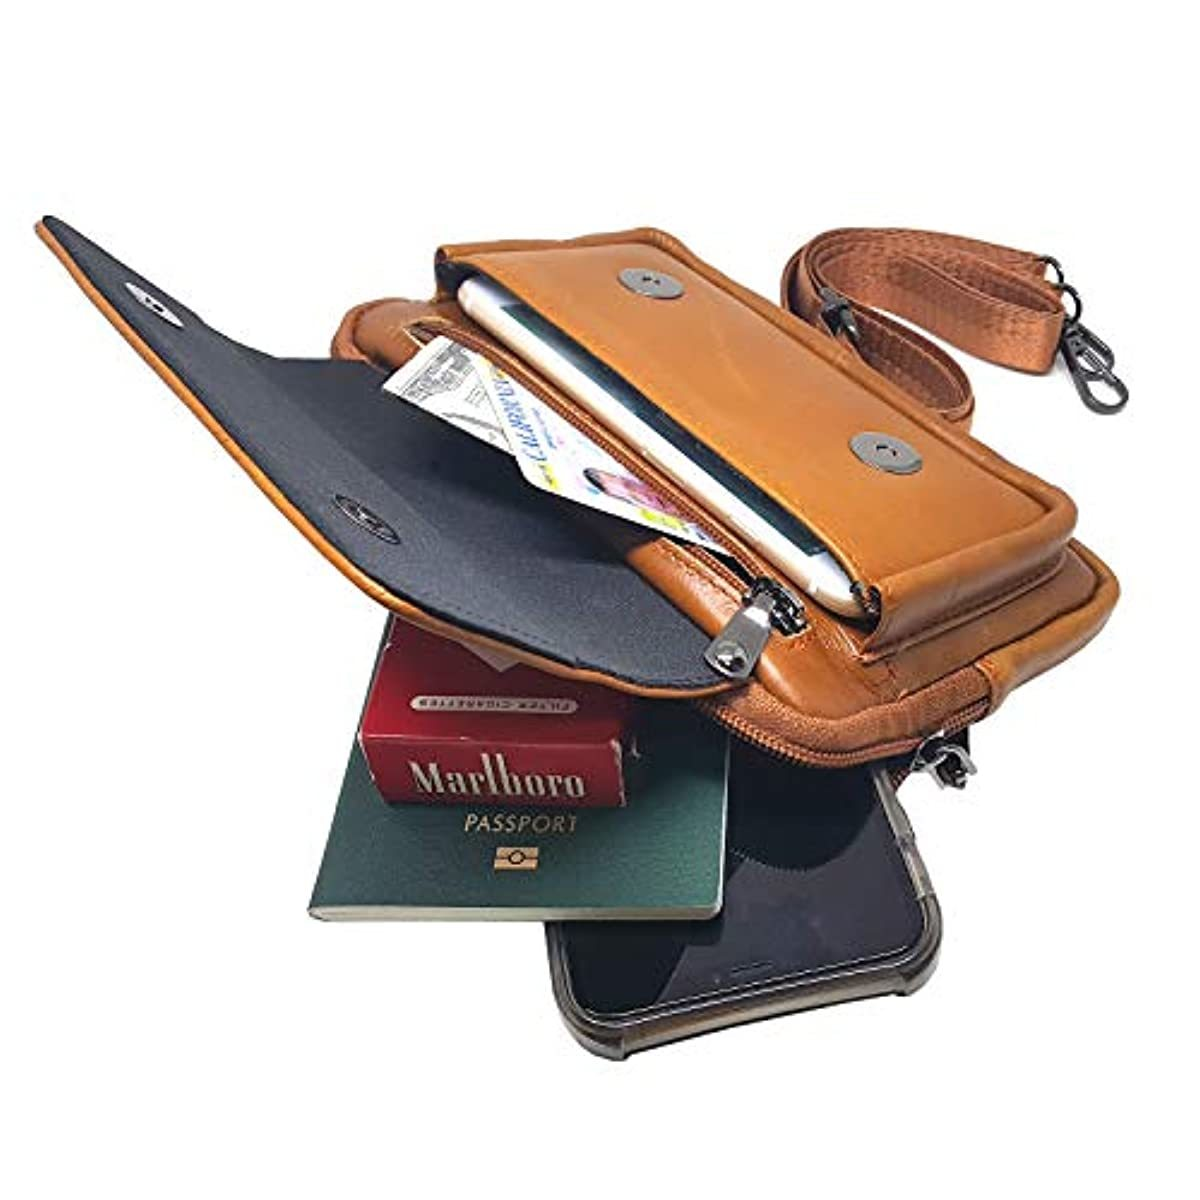 iPhone 11 Pro Max Leather Cell phone Holster Case Belt Loop Pouch Travel Messenger Bag 8134 - ENCACC